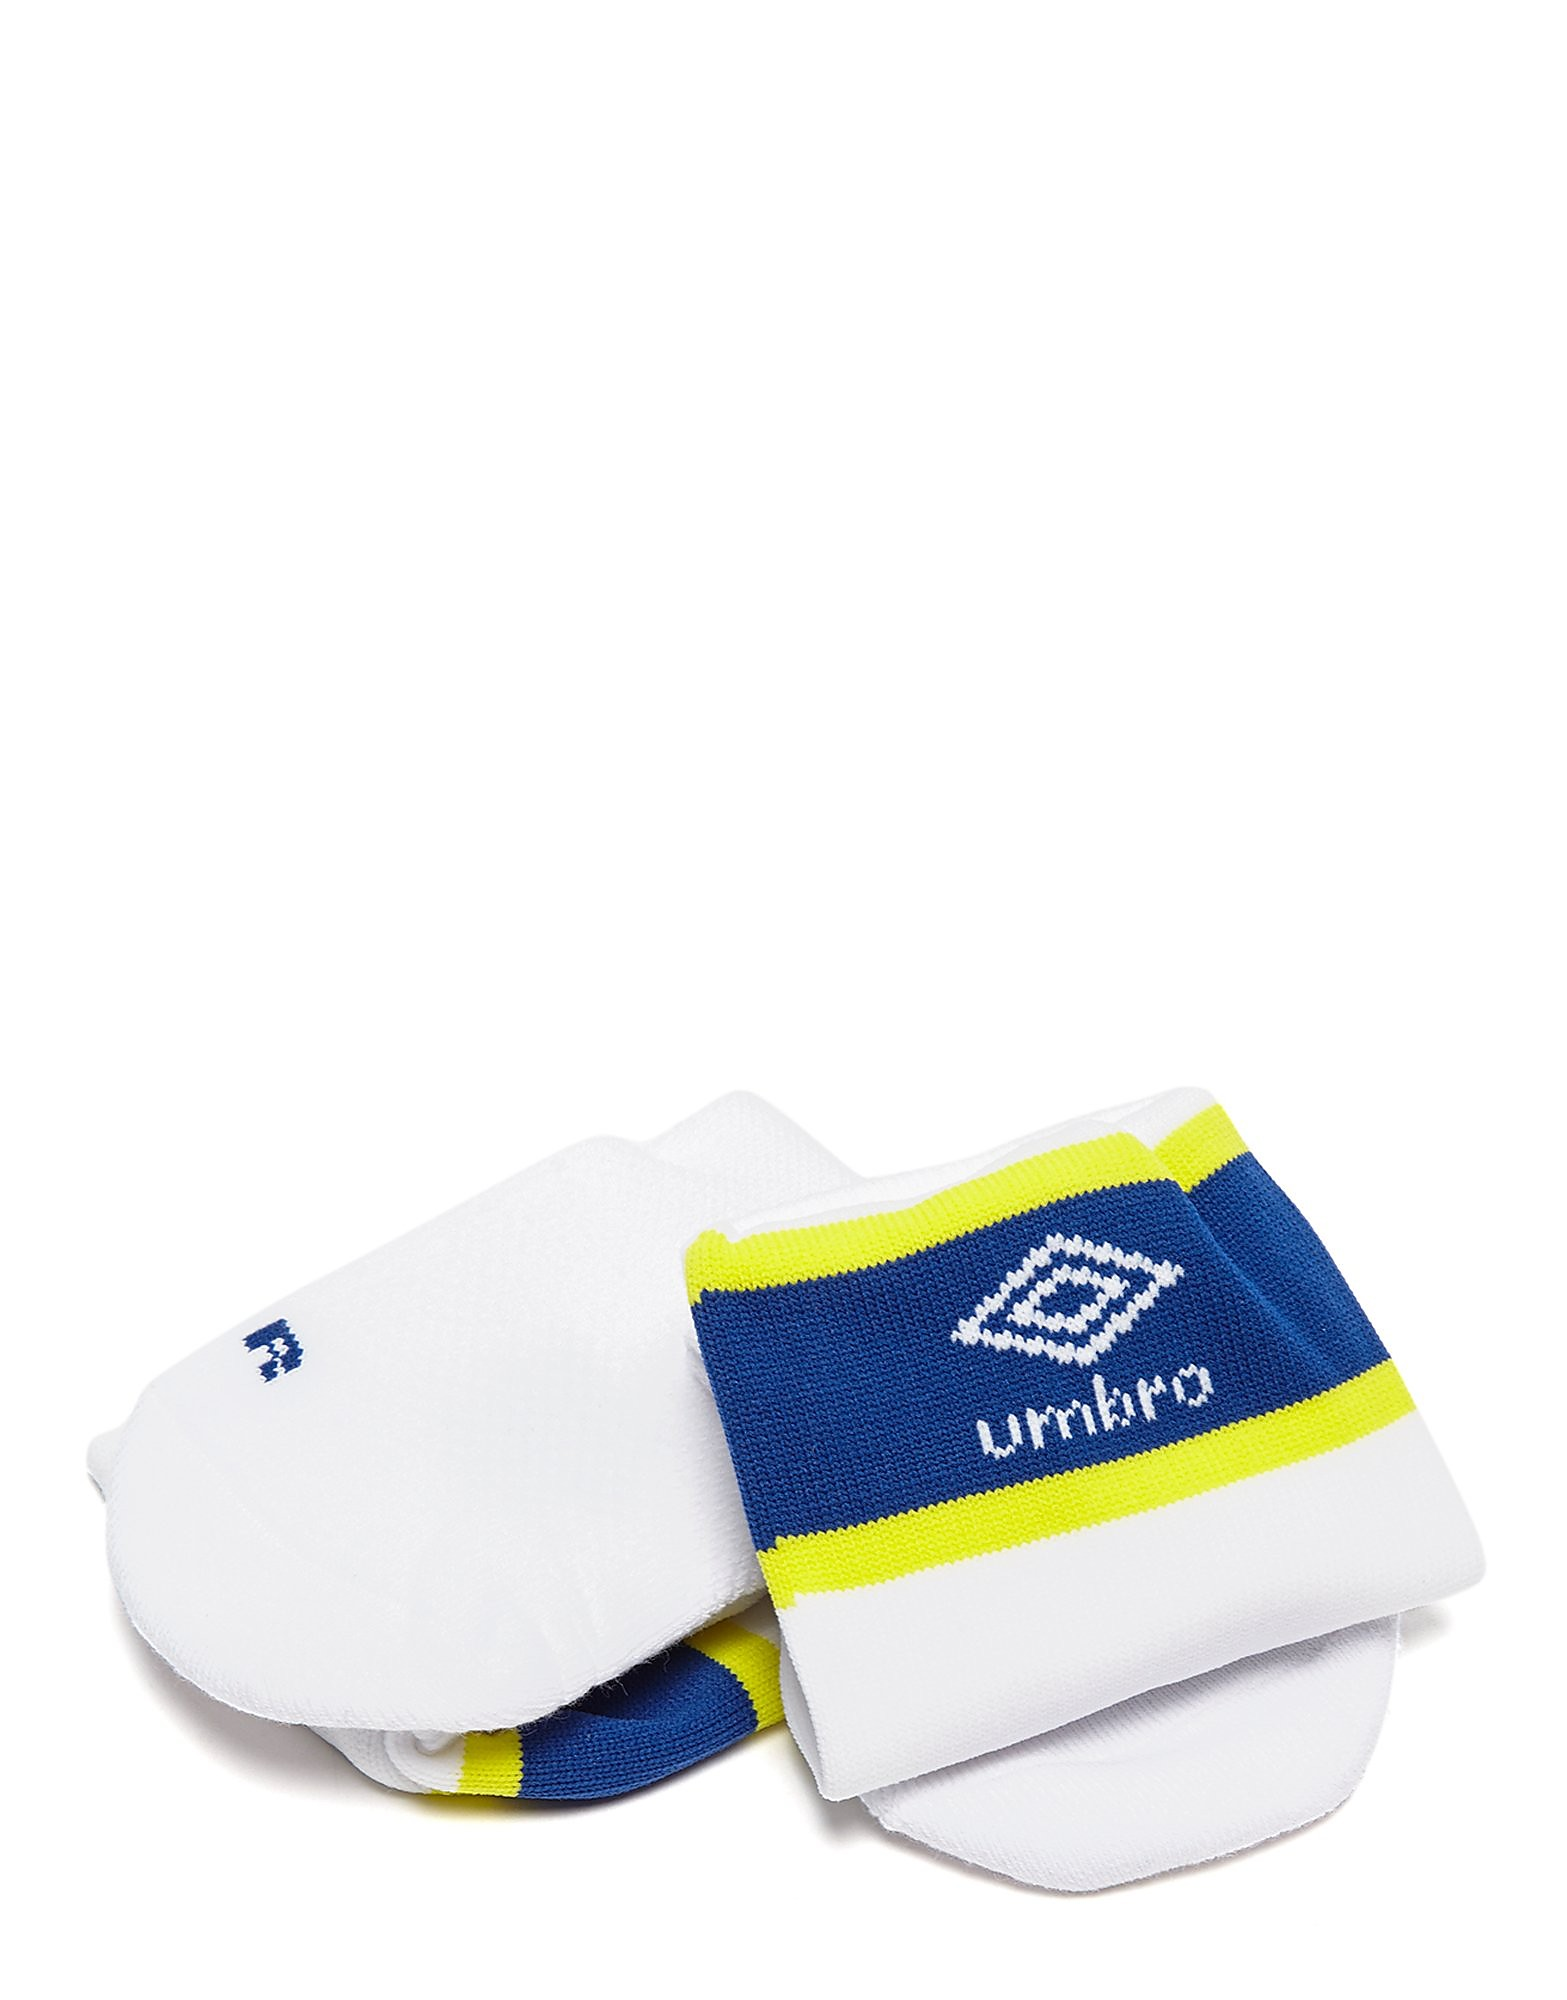 Umbro Everton FC 2016/17 Home Socks Junior